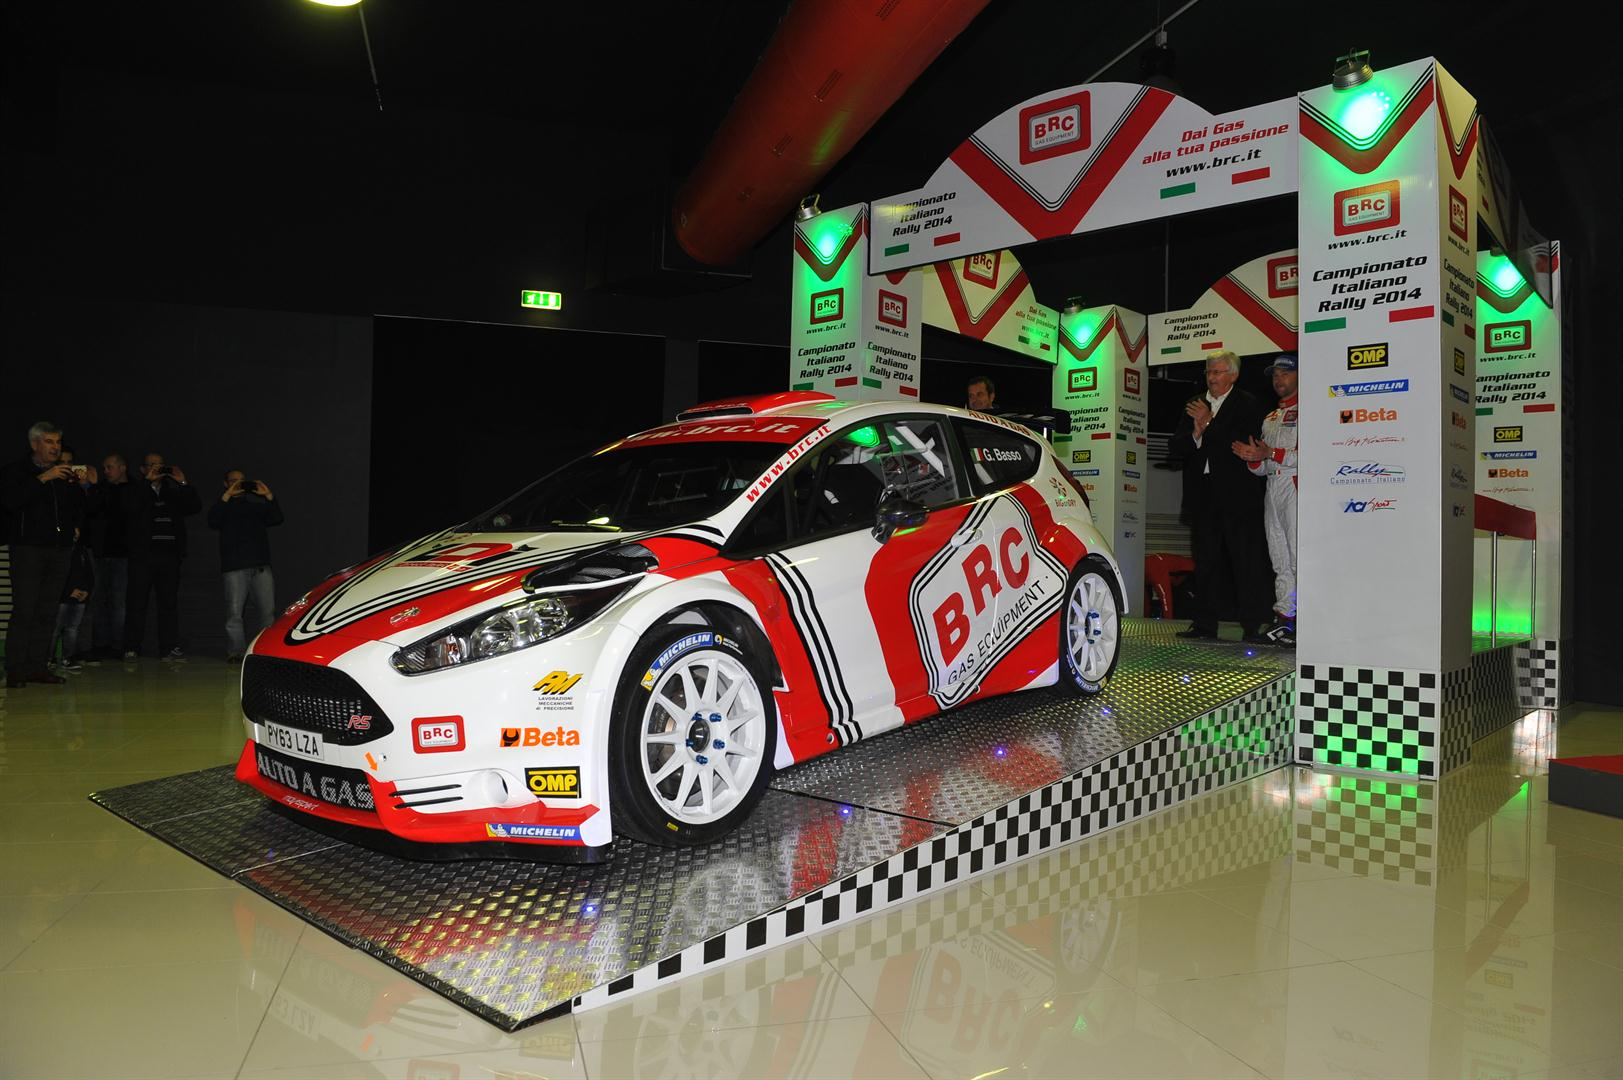 Presentation Ford Fiesta R5 - BRC powered by LPG